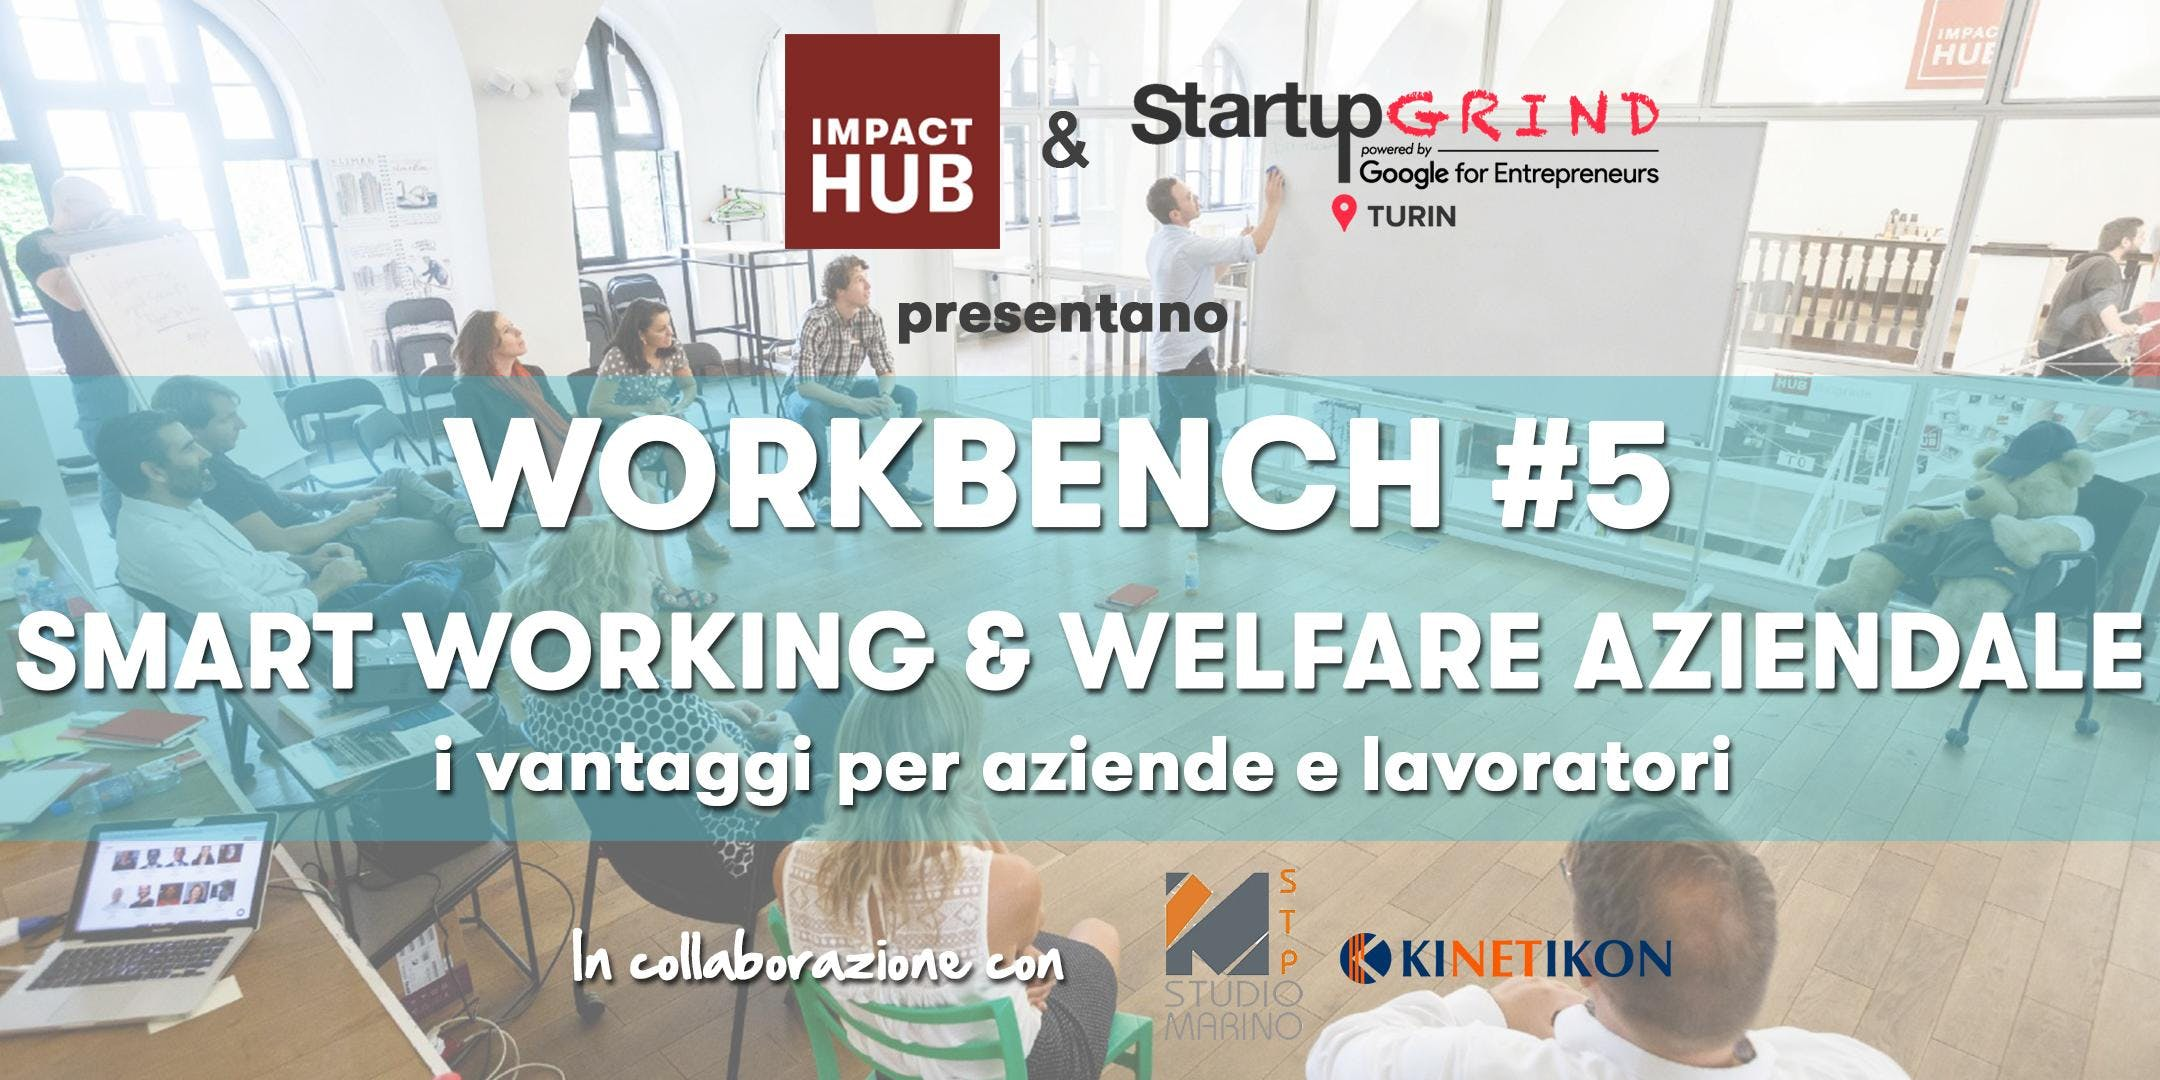 Impact Hub Workbench#5 | SMART WORKING & WELF